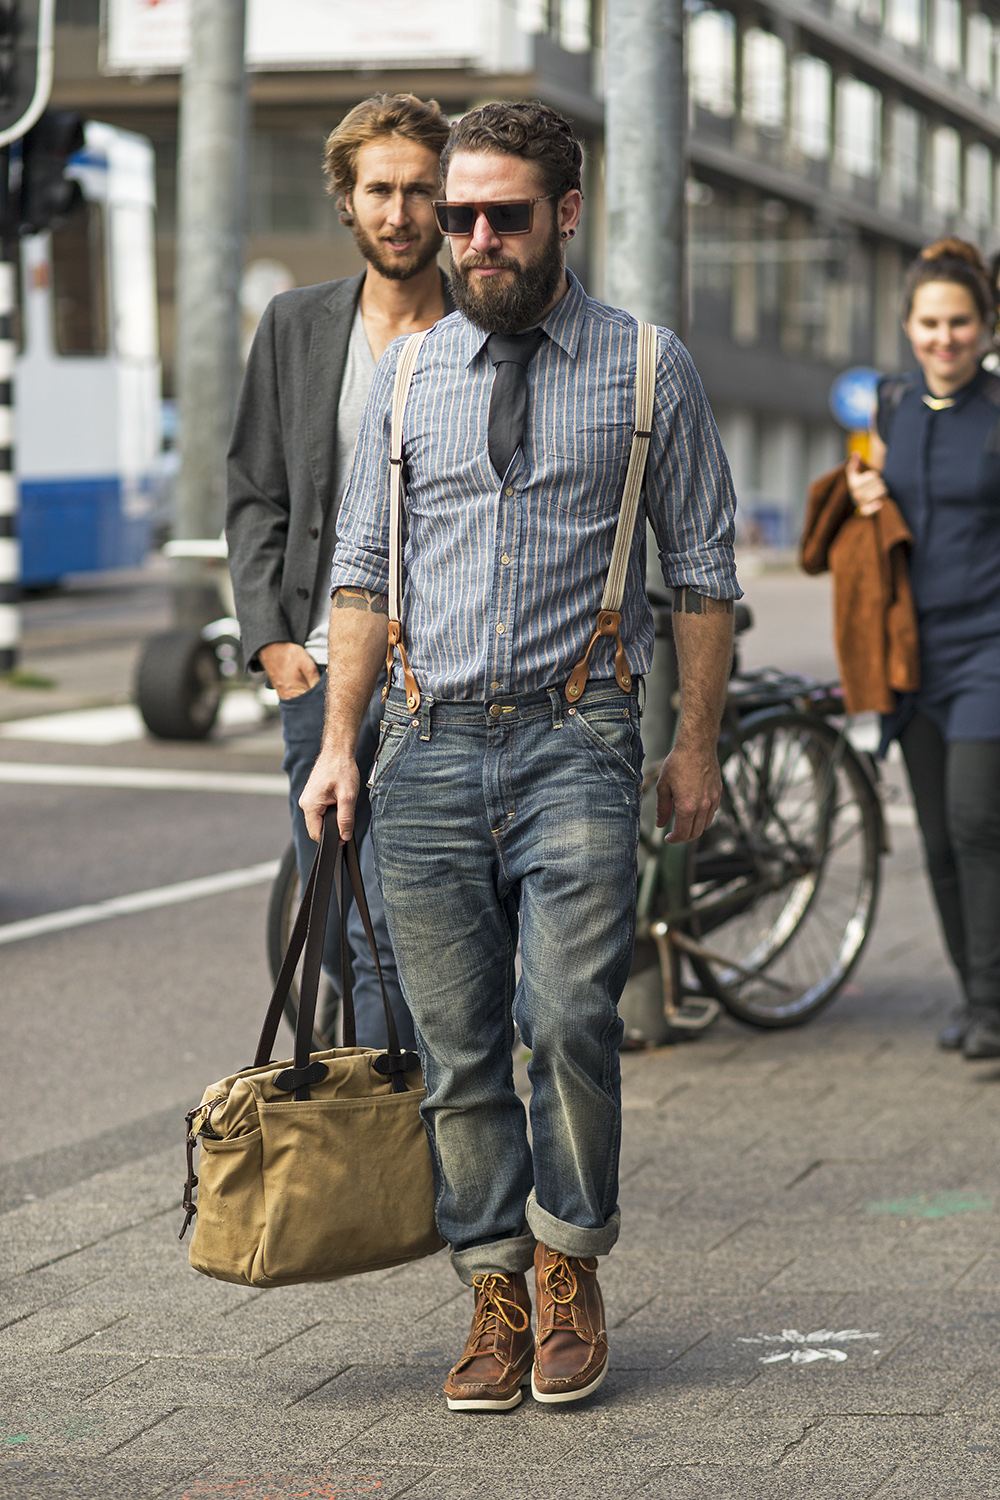 Men-Street-Fashion-amsterdam-Copy